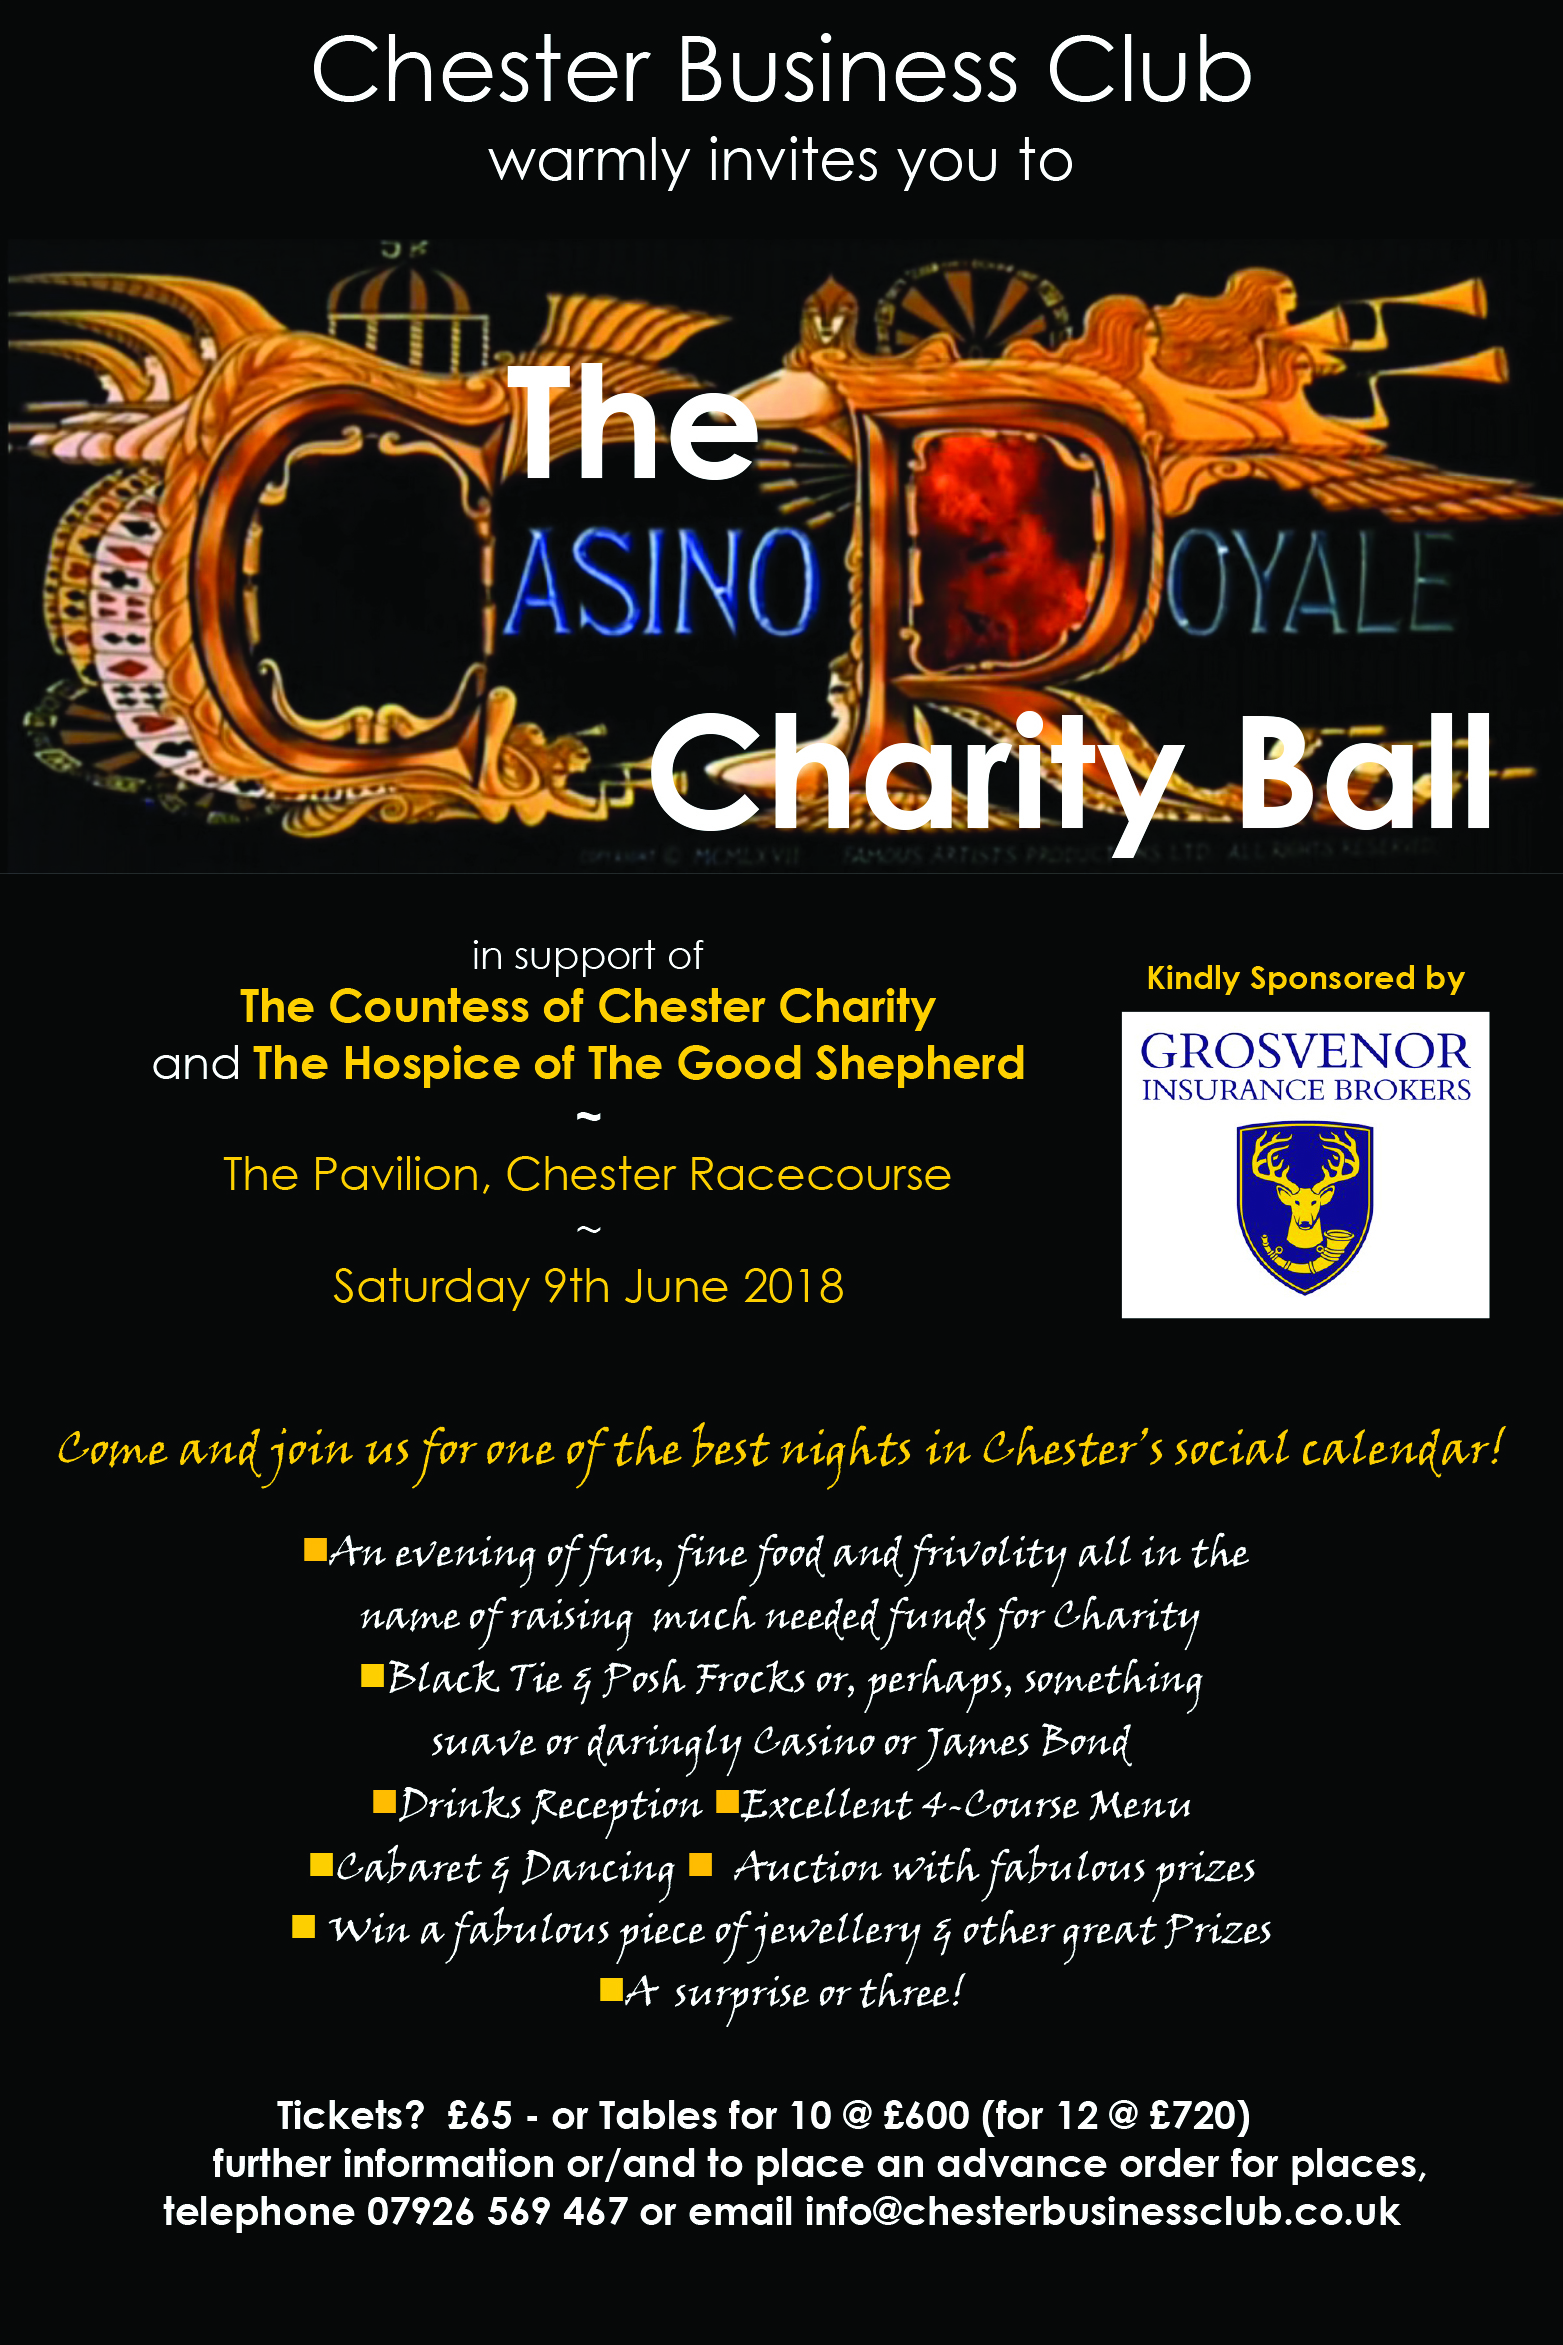 The Casino Royale Charity Ball